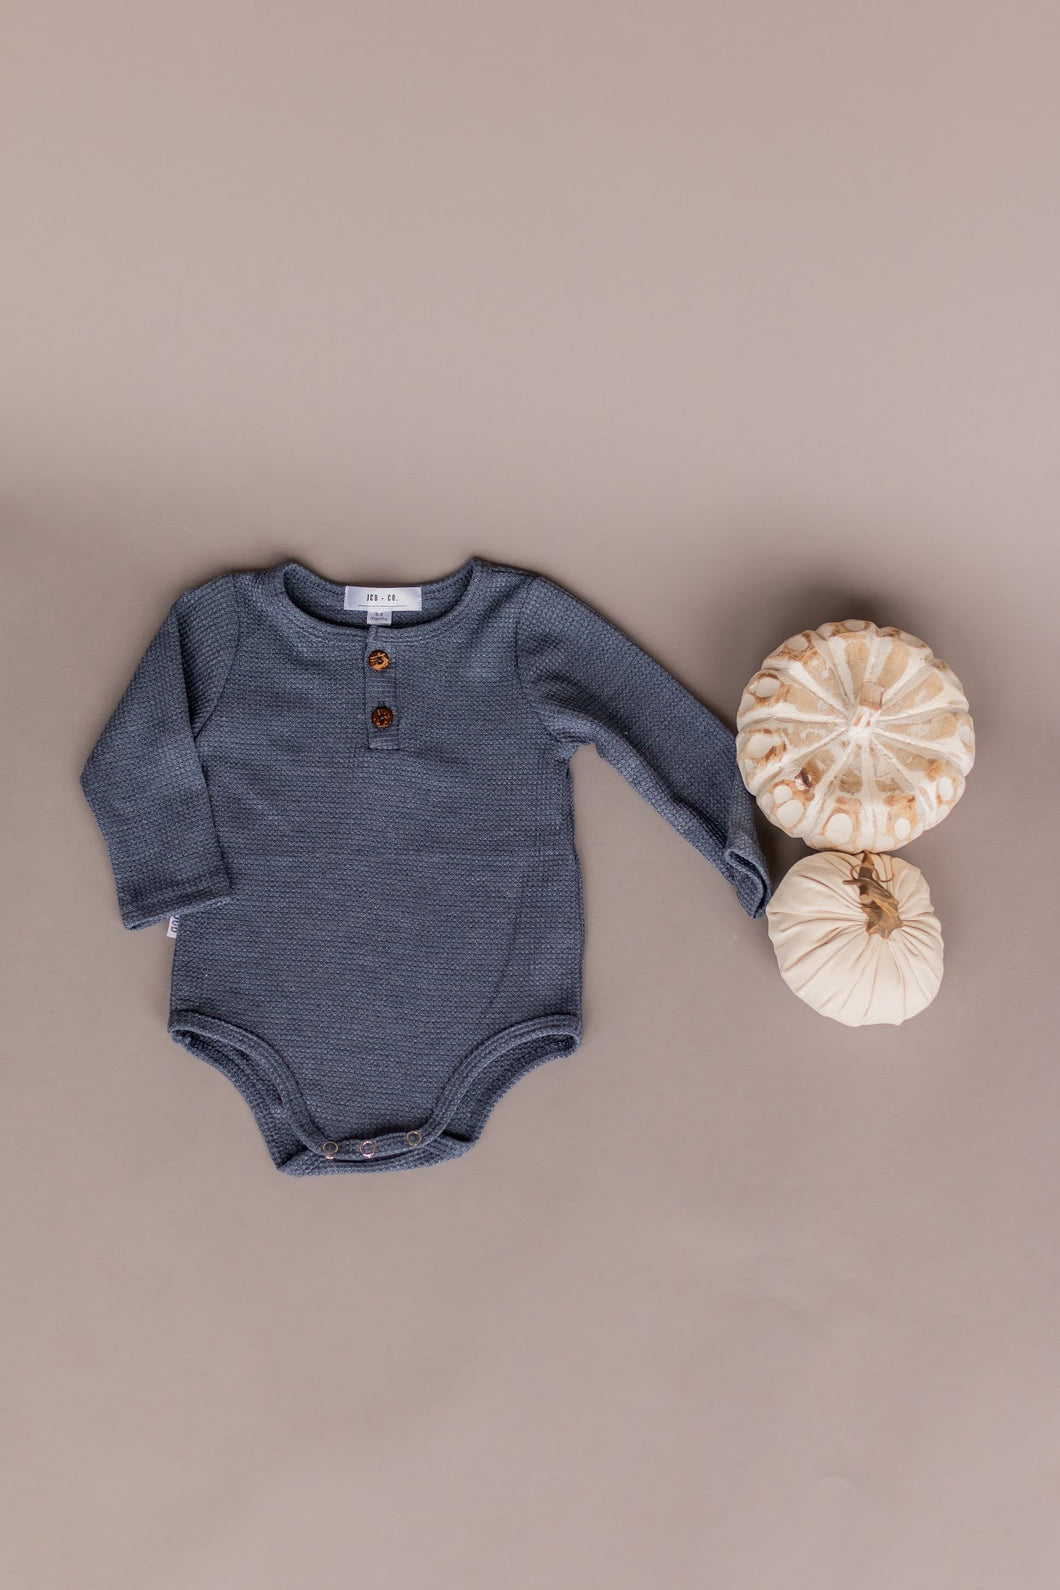 knit onesie - blue